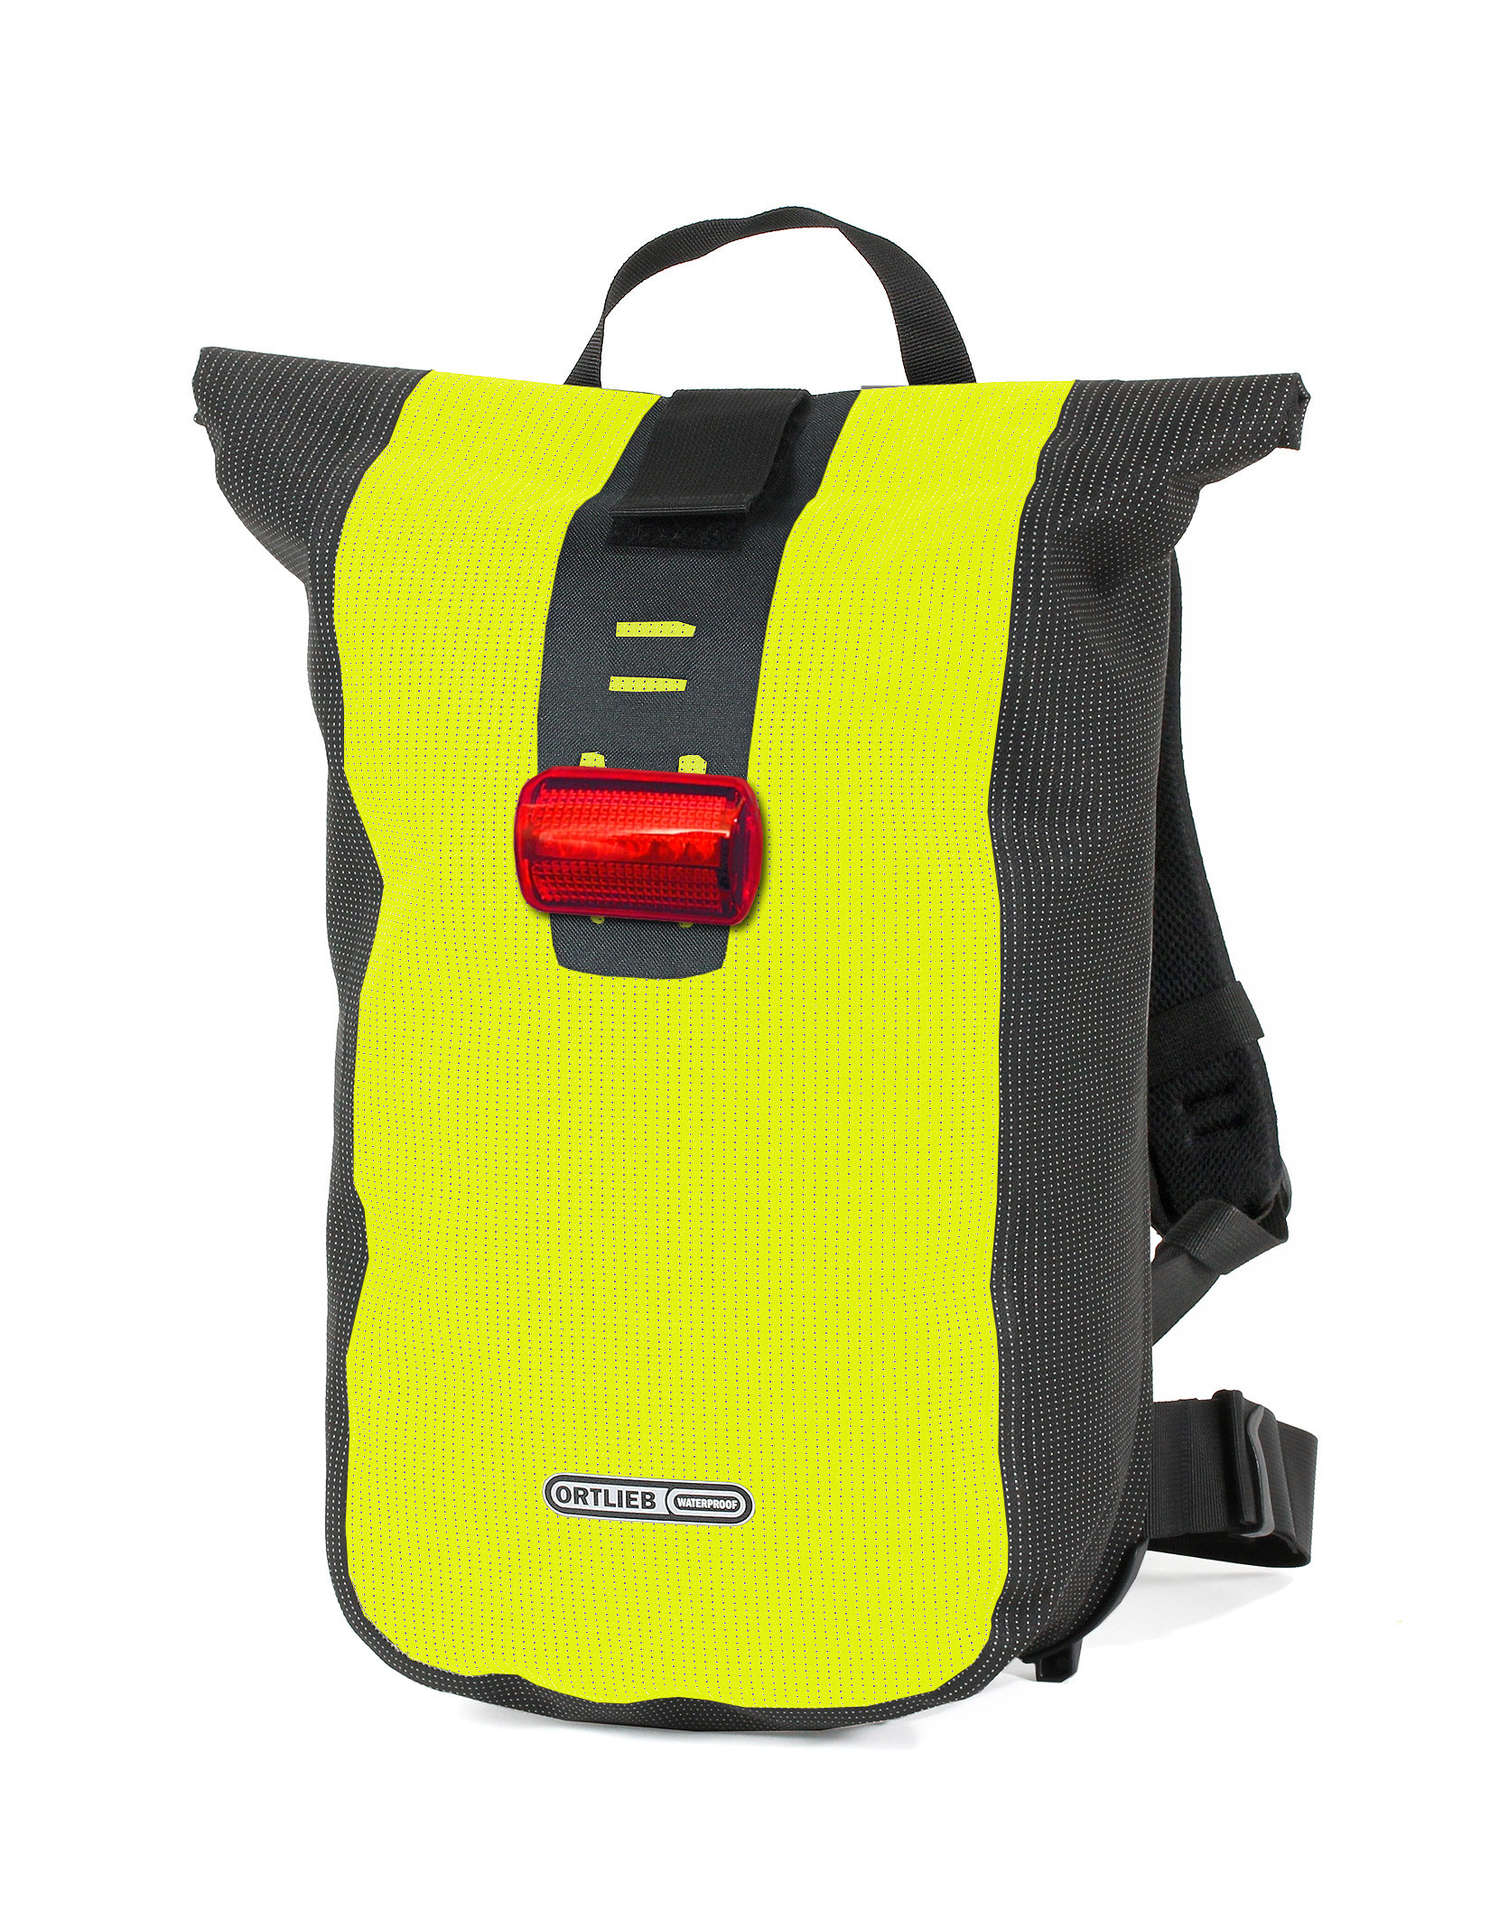 8242c3080ba Ortlieb Velocity Rugzak High Visibility Fluo Geel Reflective koop je ...